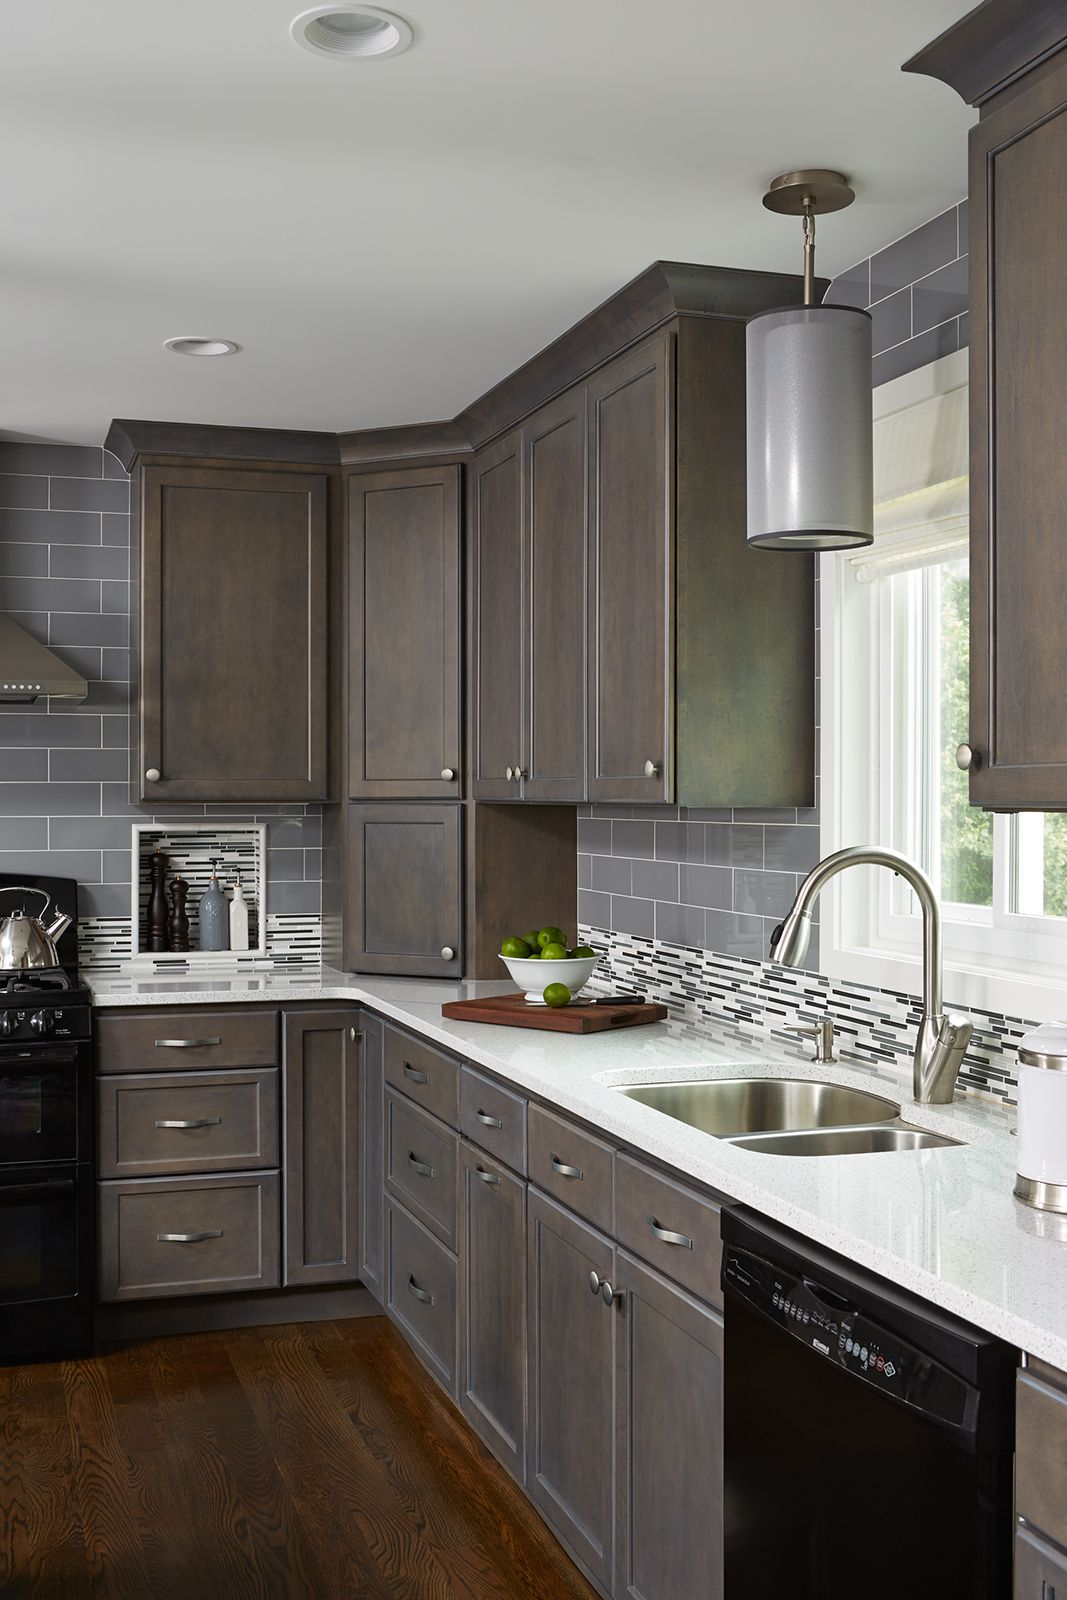 Ma Peterson Collaborated With M Gilbertson Design For This Kitchen Expansion And Remodel The New Grey Kitchen Cabinets Kitchen Cupboard Designs Home Kitchens